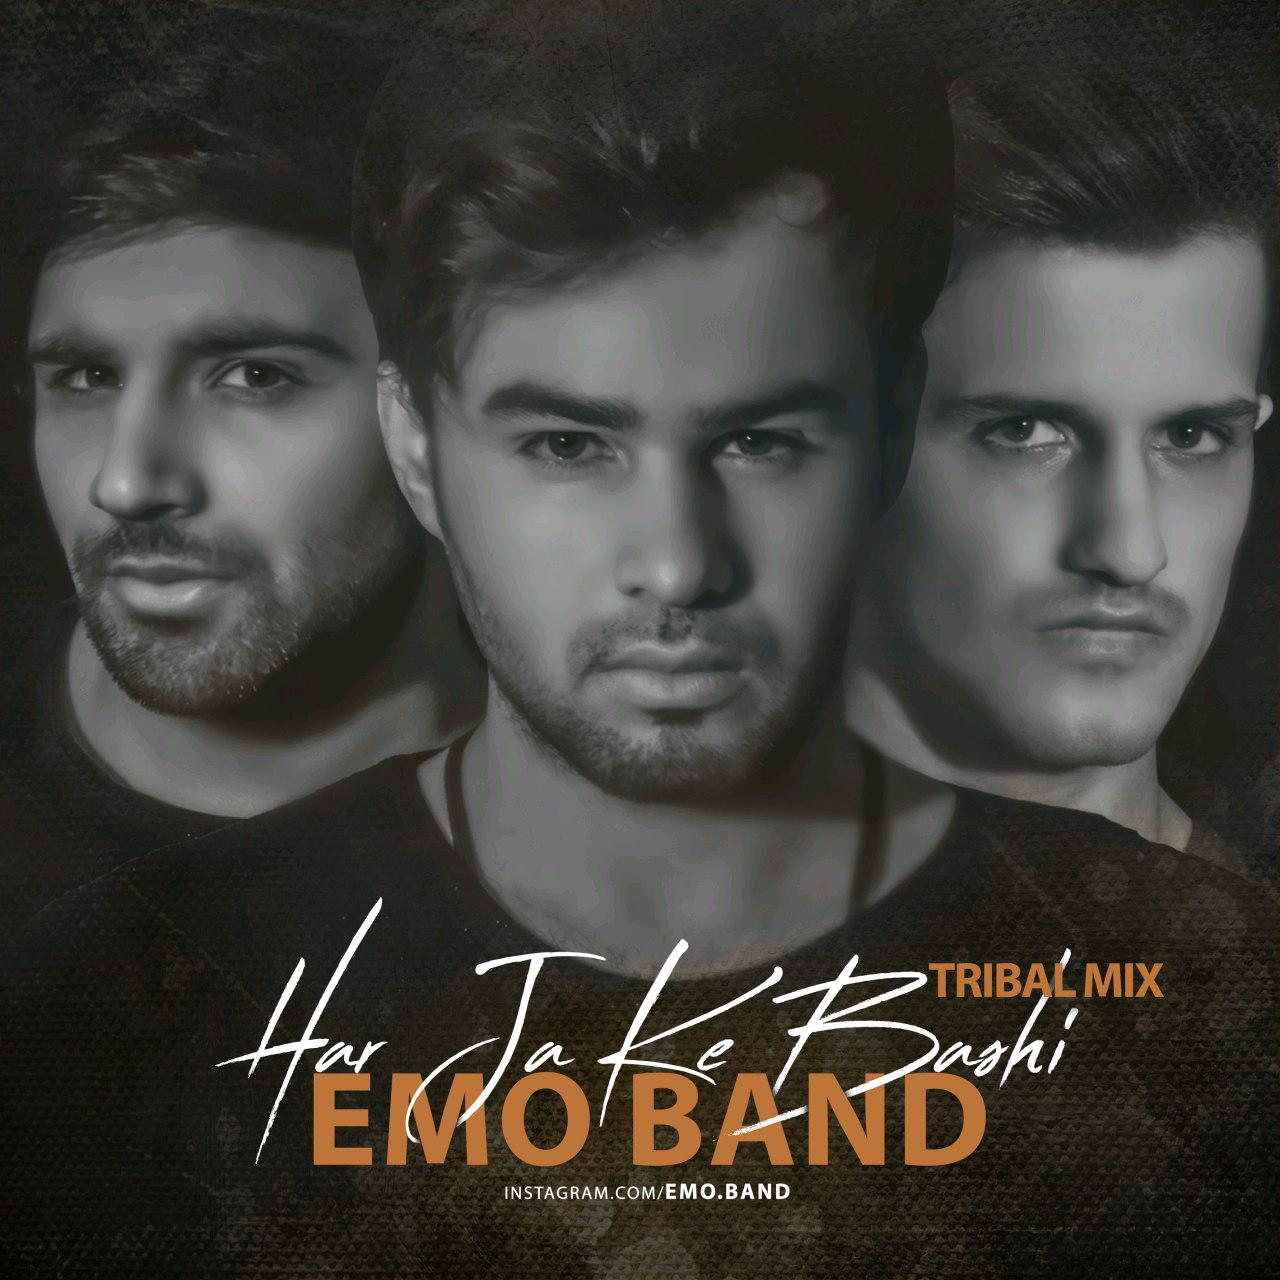 EMO Band - Harja Ke Bashi (Tribal Mix)